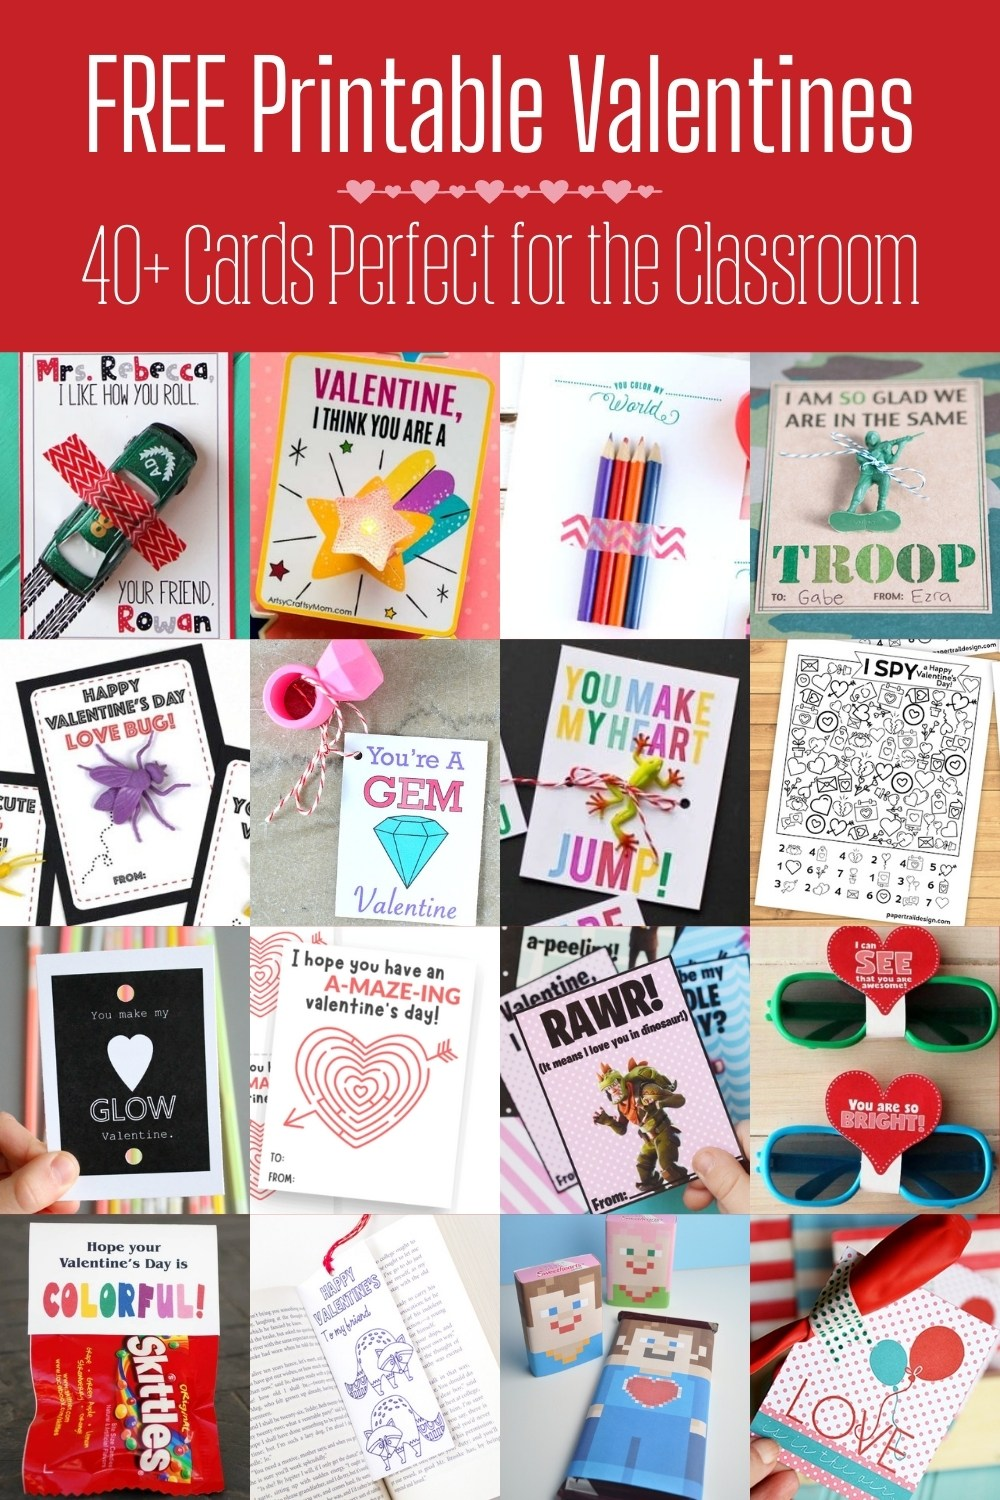 Free Printable Valentines for the Classroom